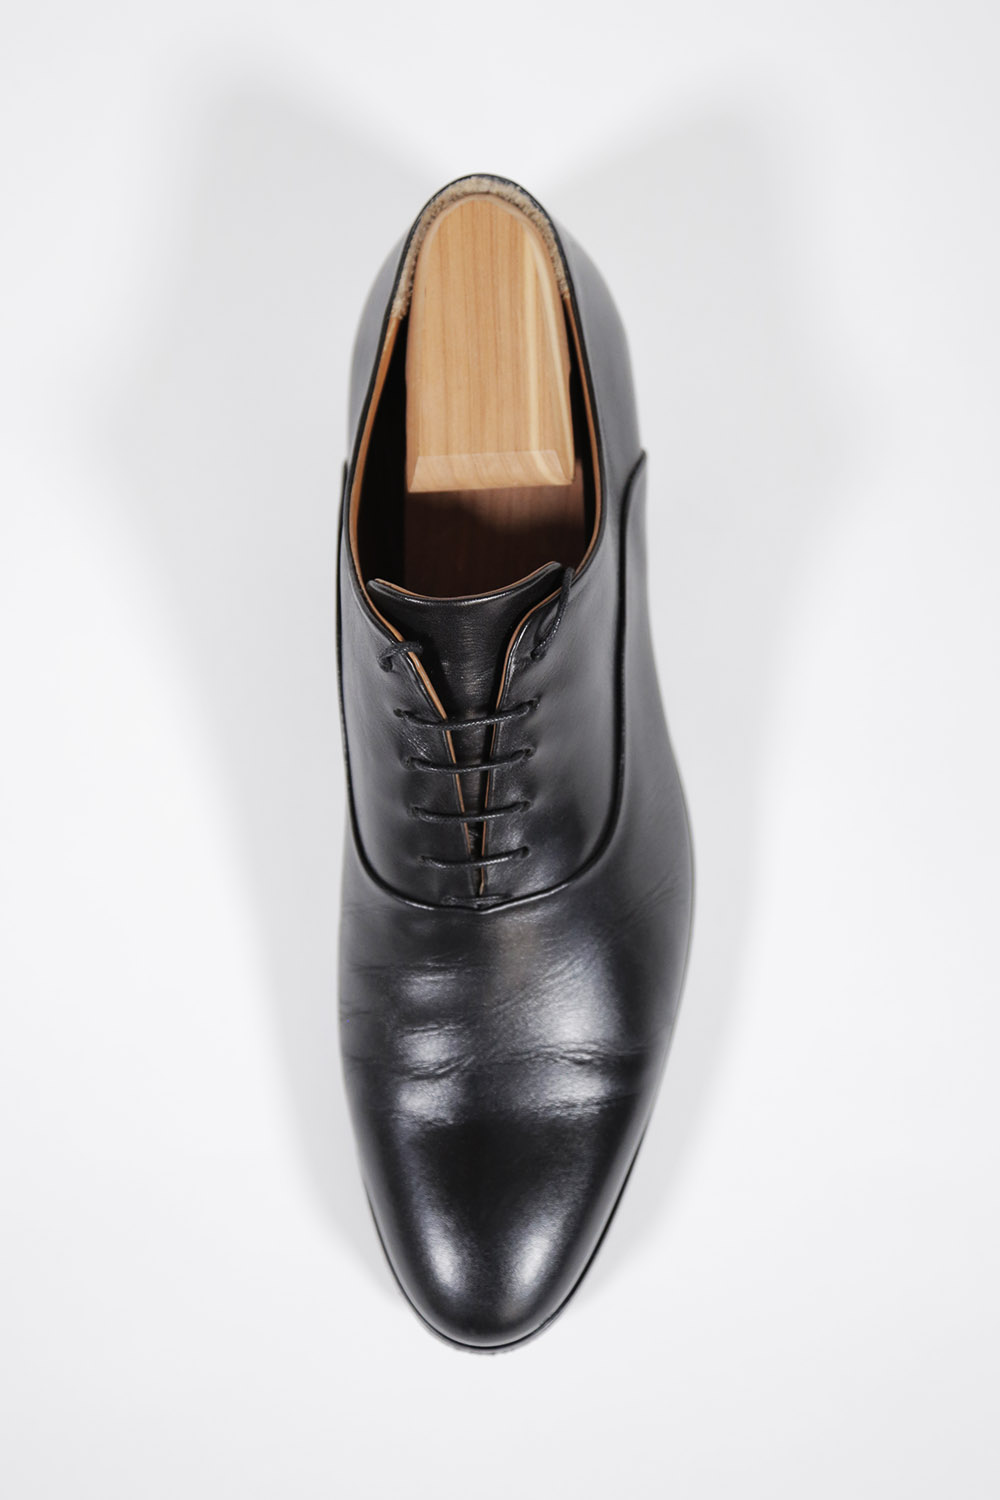 owen edward black oxford top view